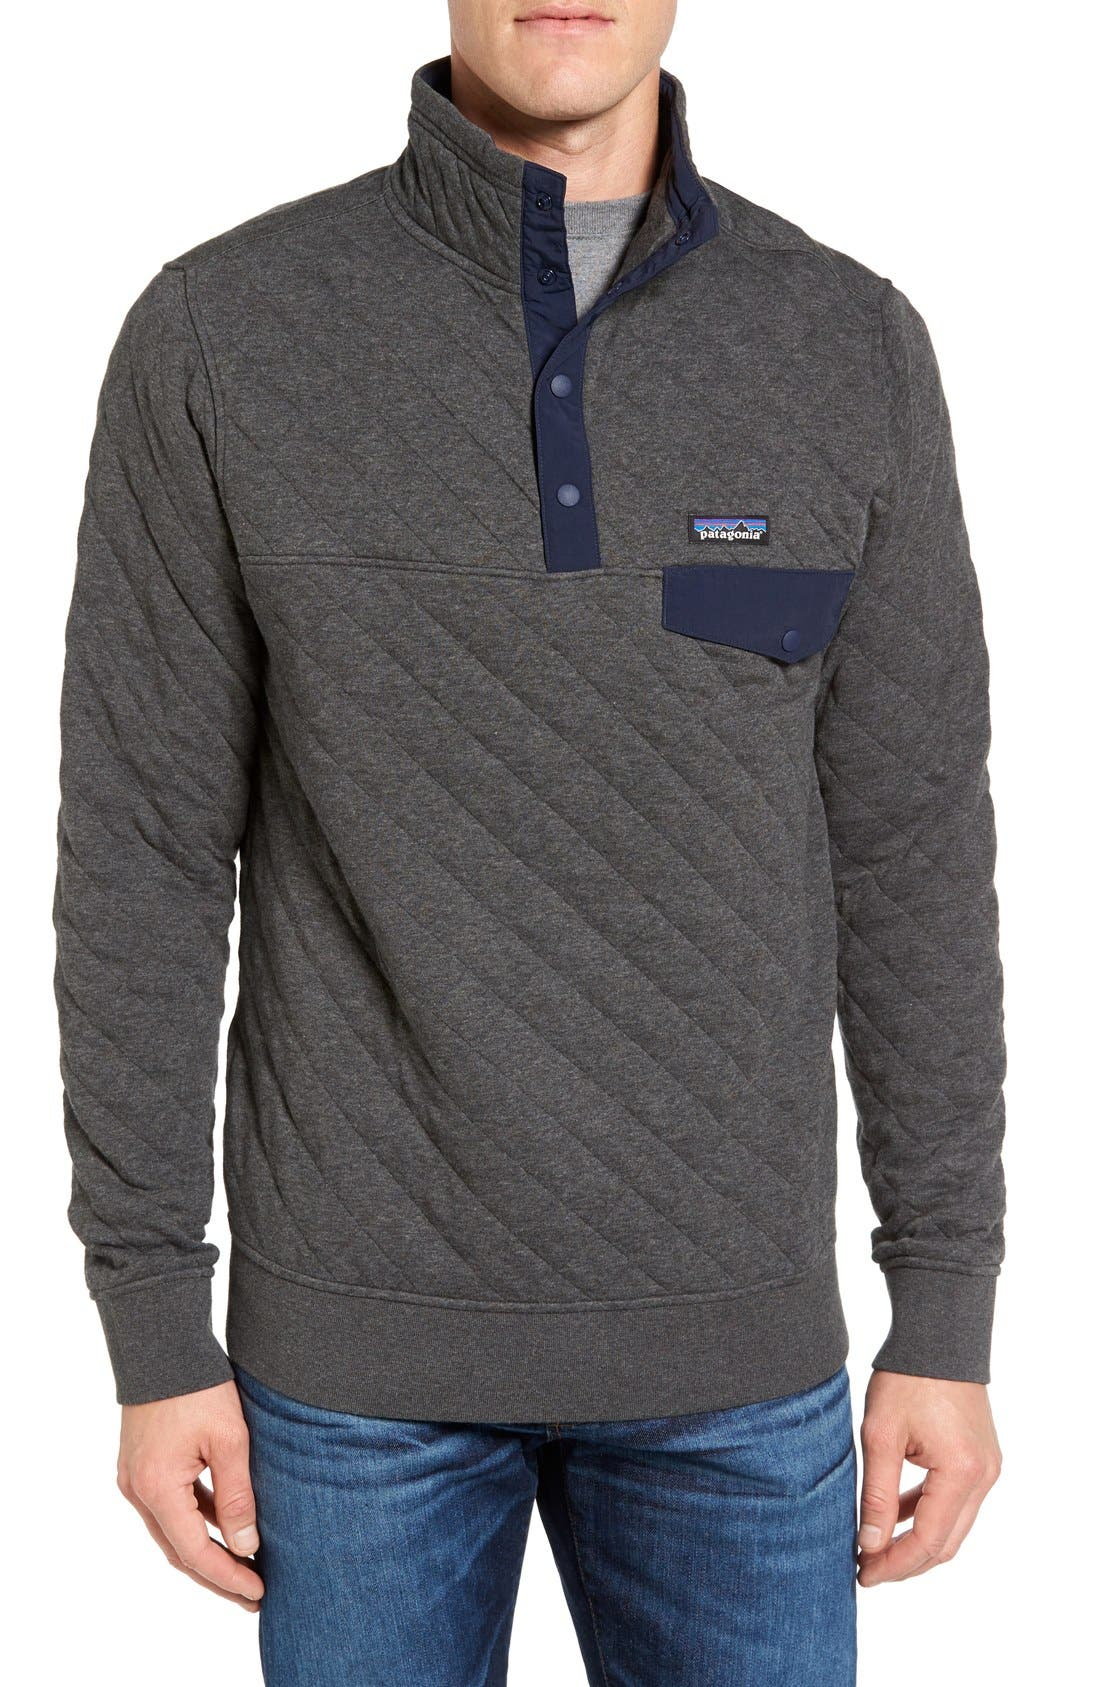 Patagonia Snap-T Quilted Fleece Pullover